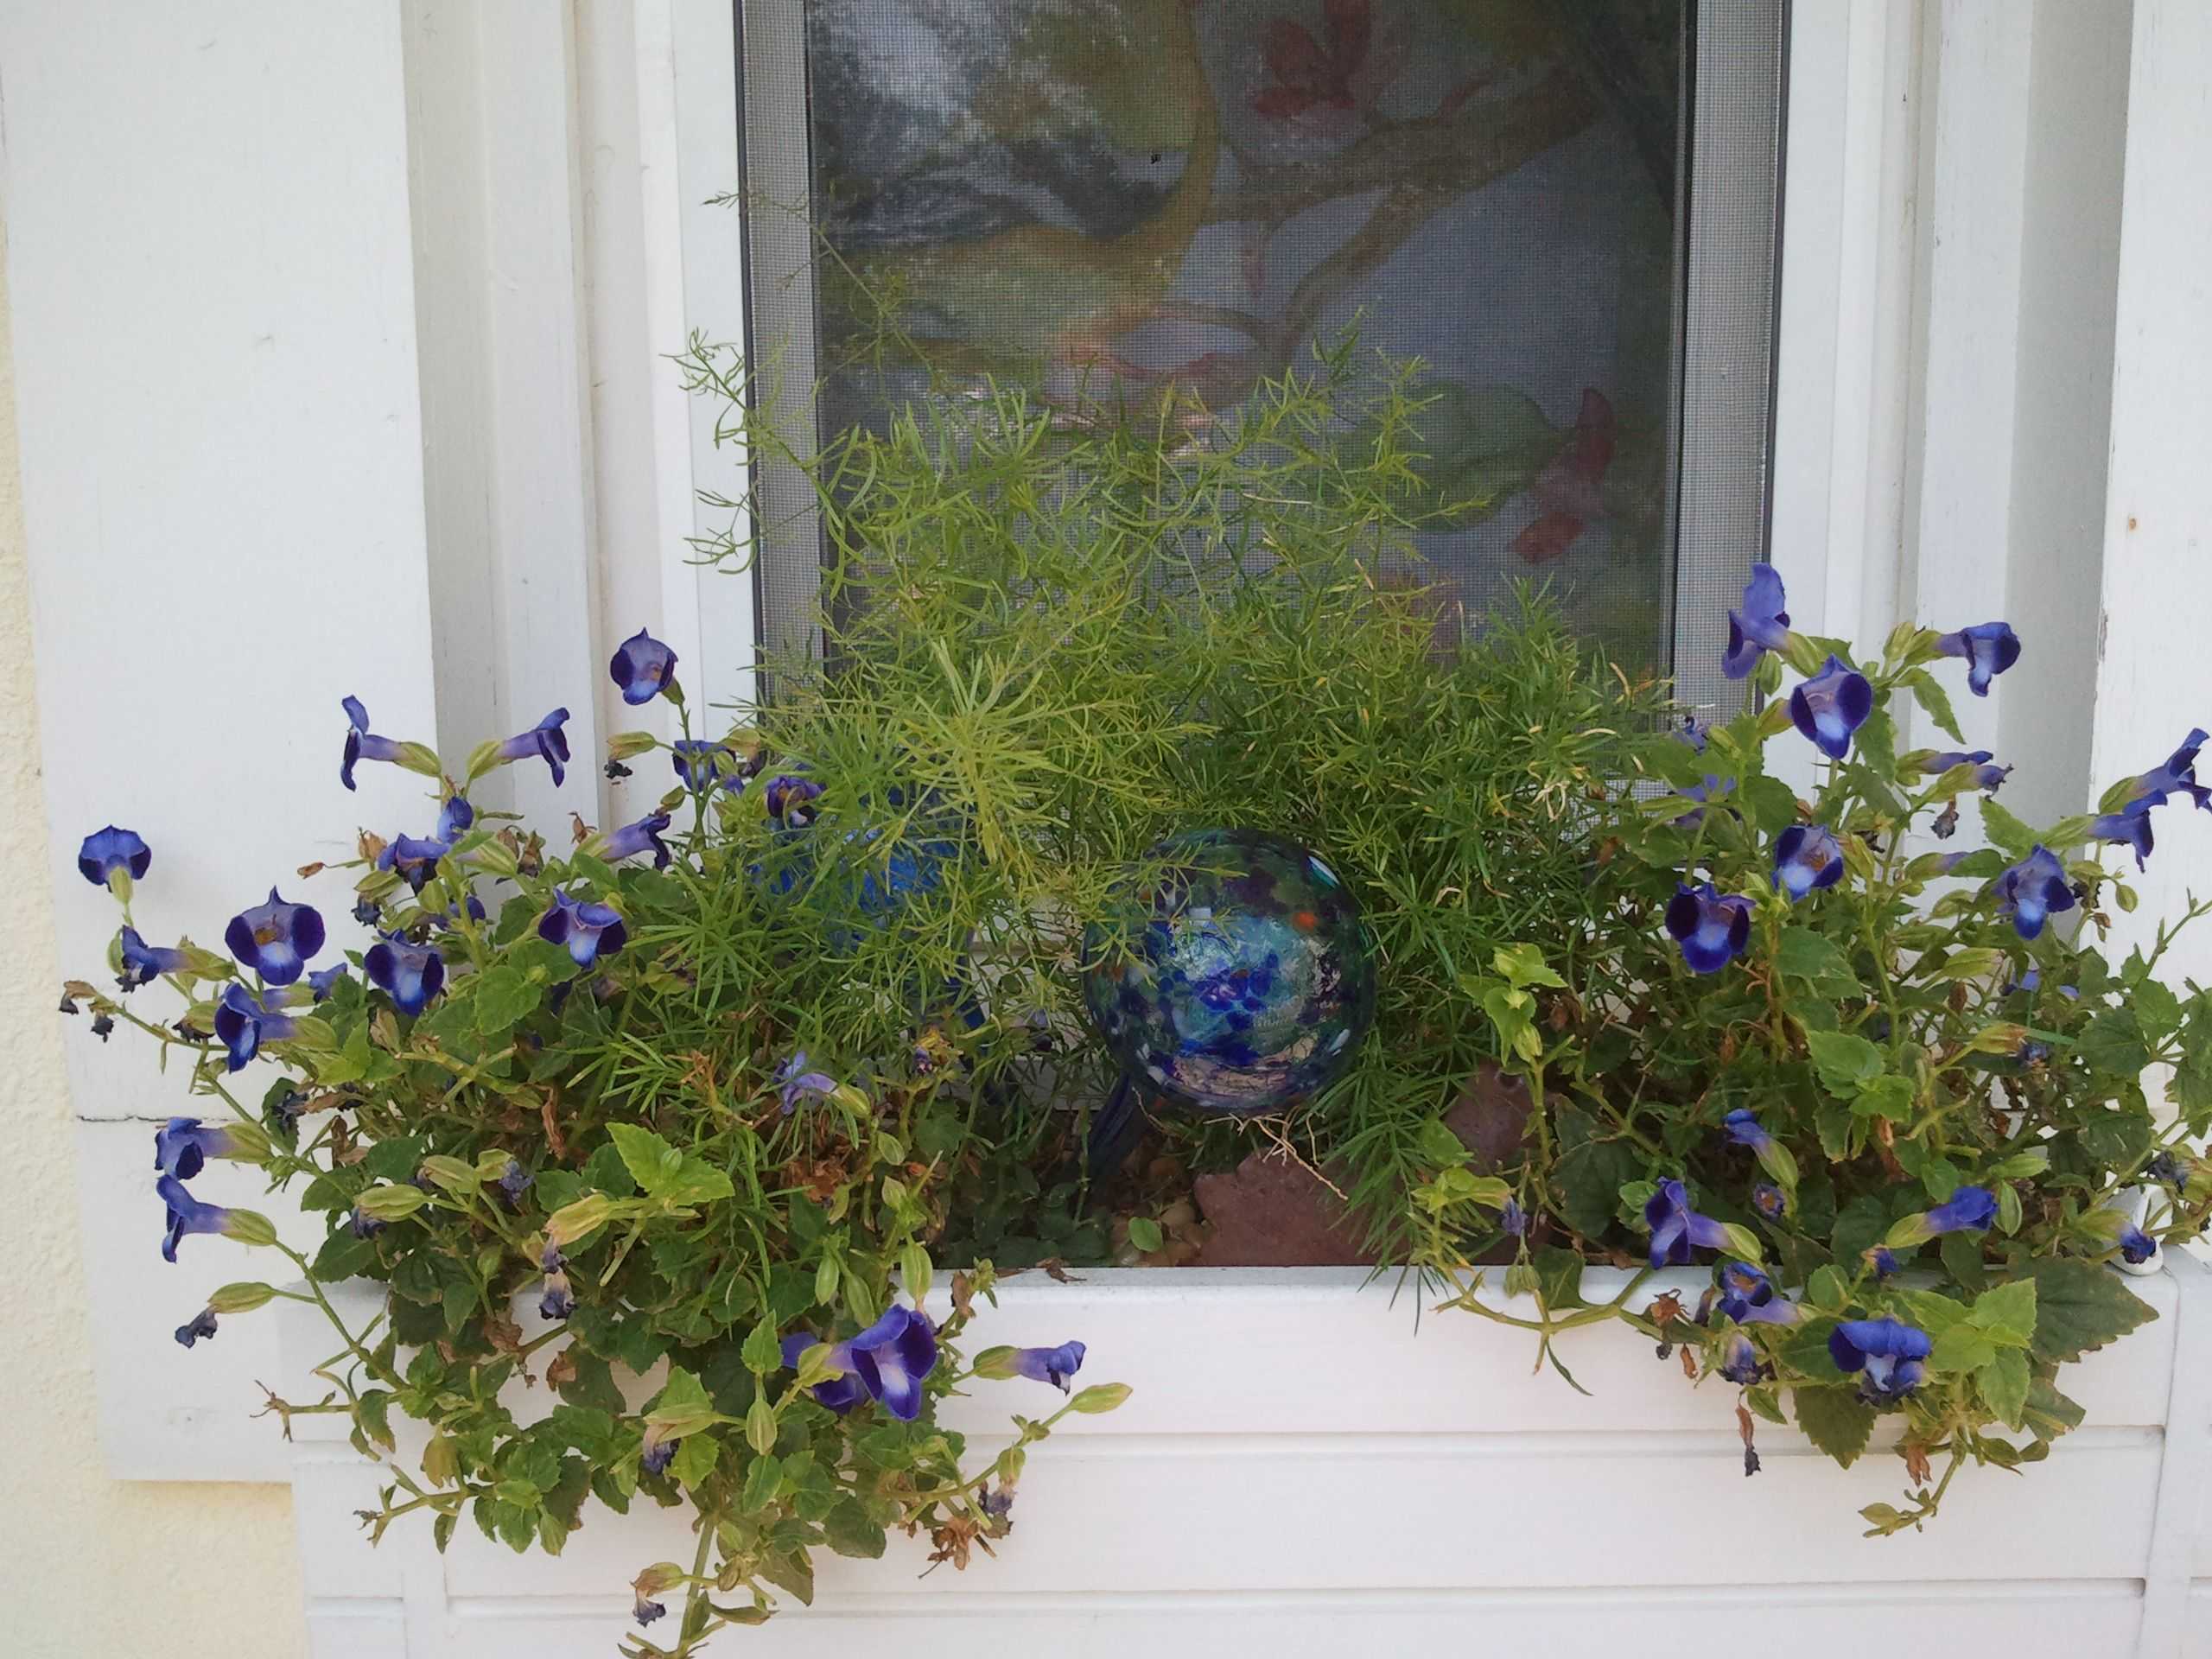 Window box ideas without flowers  window flower box  outside  pinterest  window flower boxes and